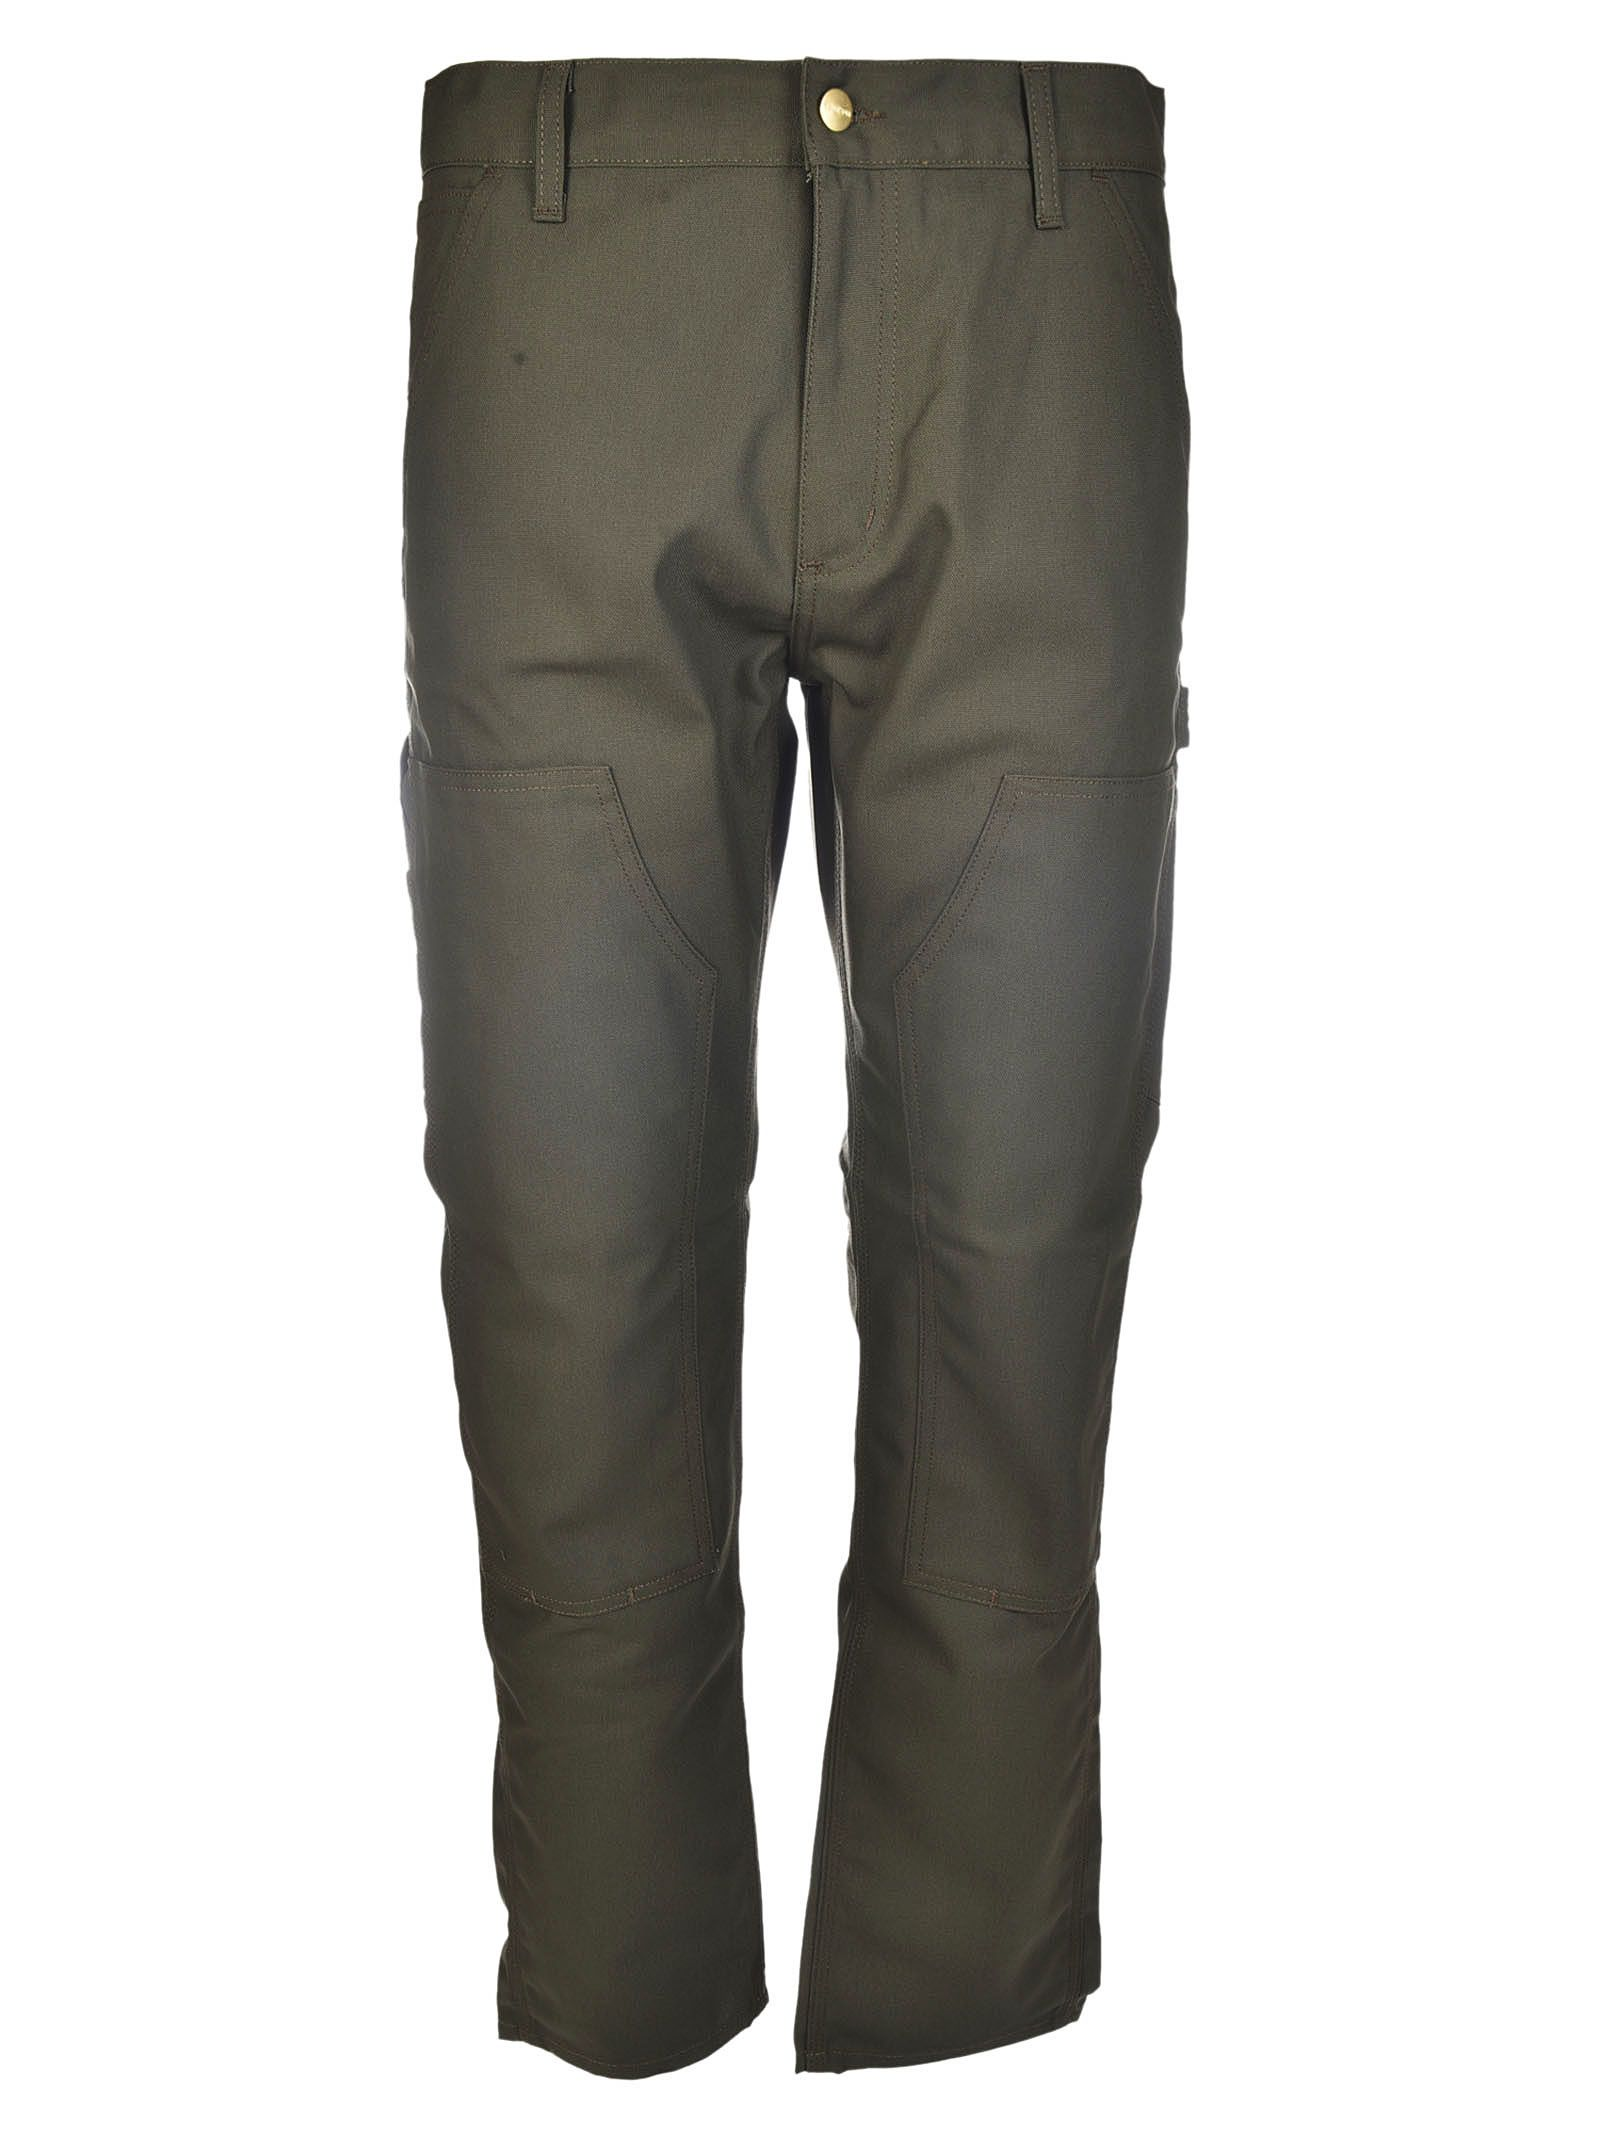 Carhartt Ruck Double Knee Trousers